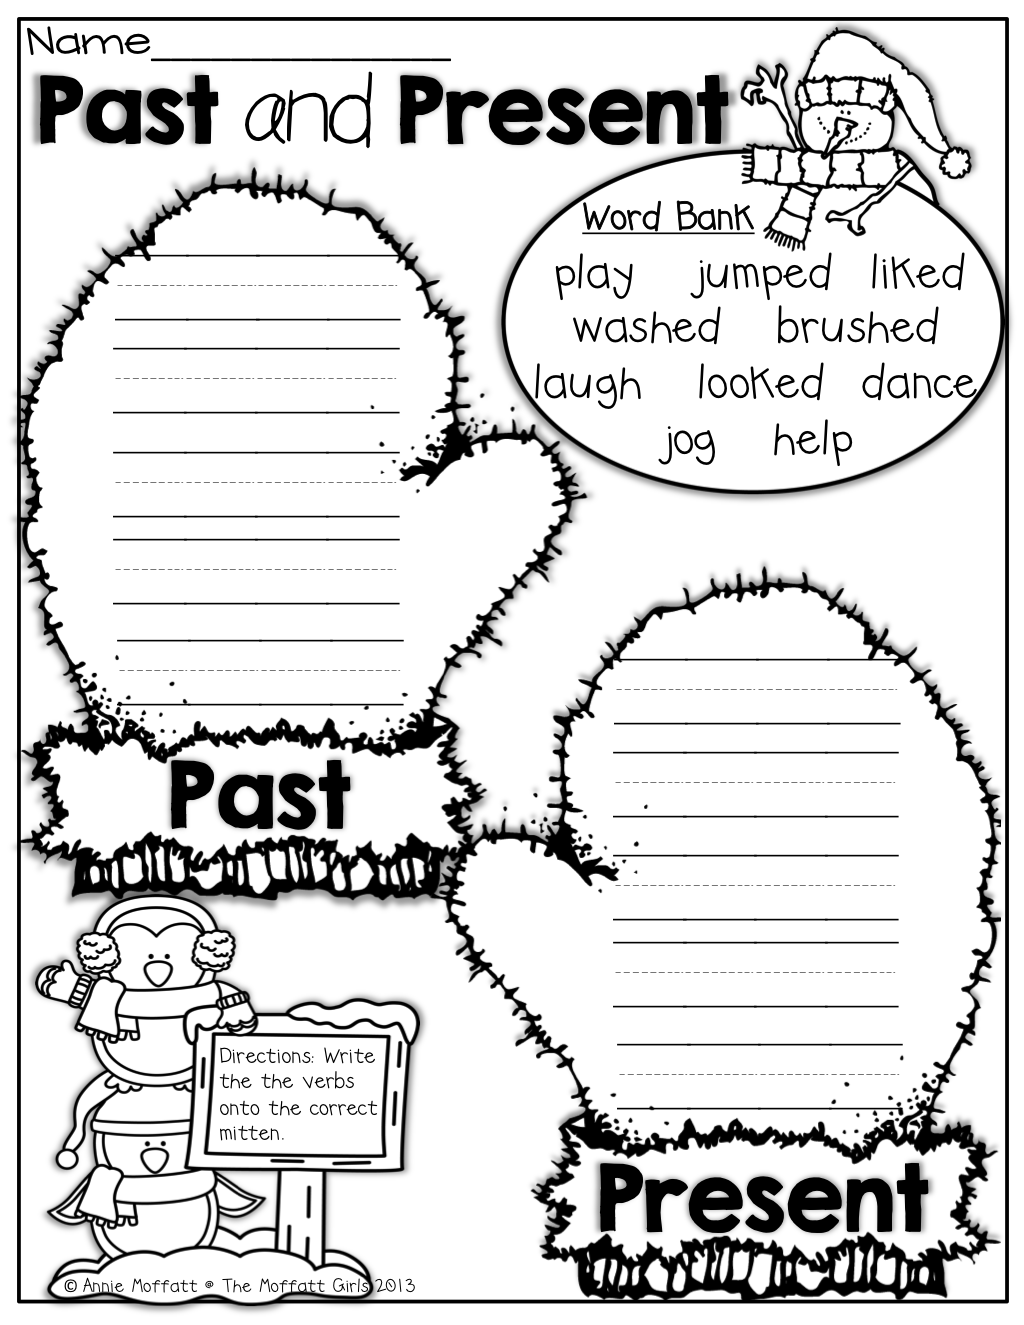 past and present verbs 1st grade activities first grade Bilingual Job Resume past and present verbs